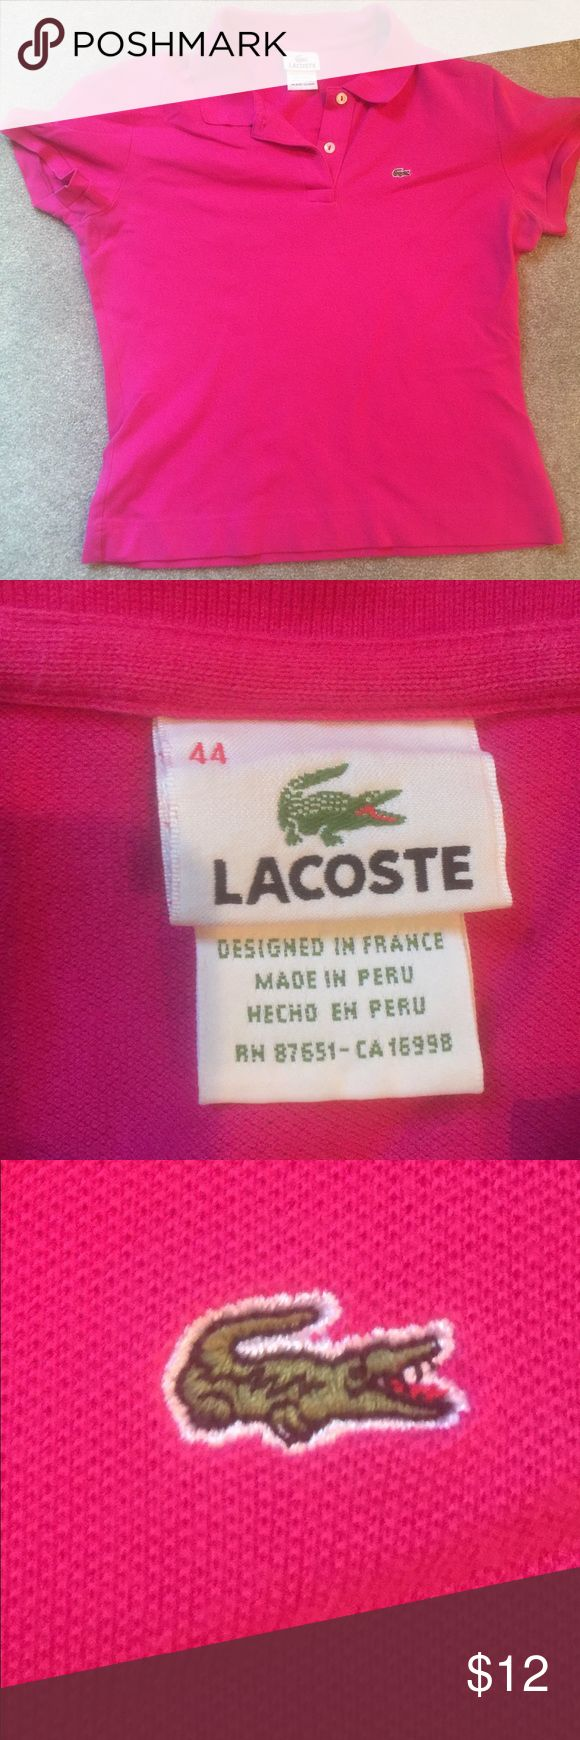 Lacoste Pink Polo Lacoste Pink Polo in excellent condition! Just trying to clean out my closet! Lacoste Tops Blouses